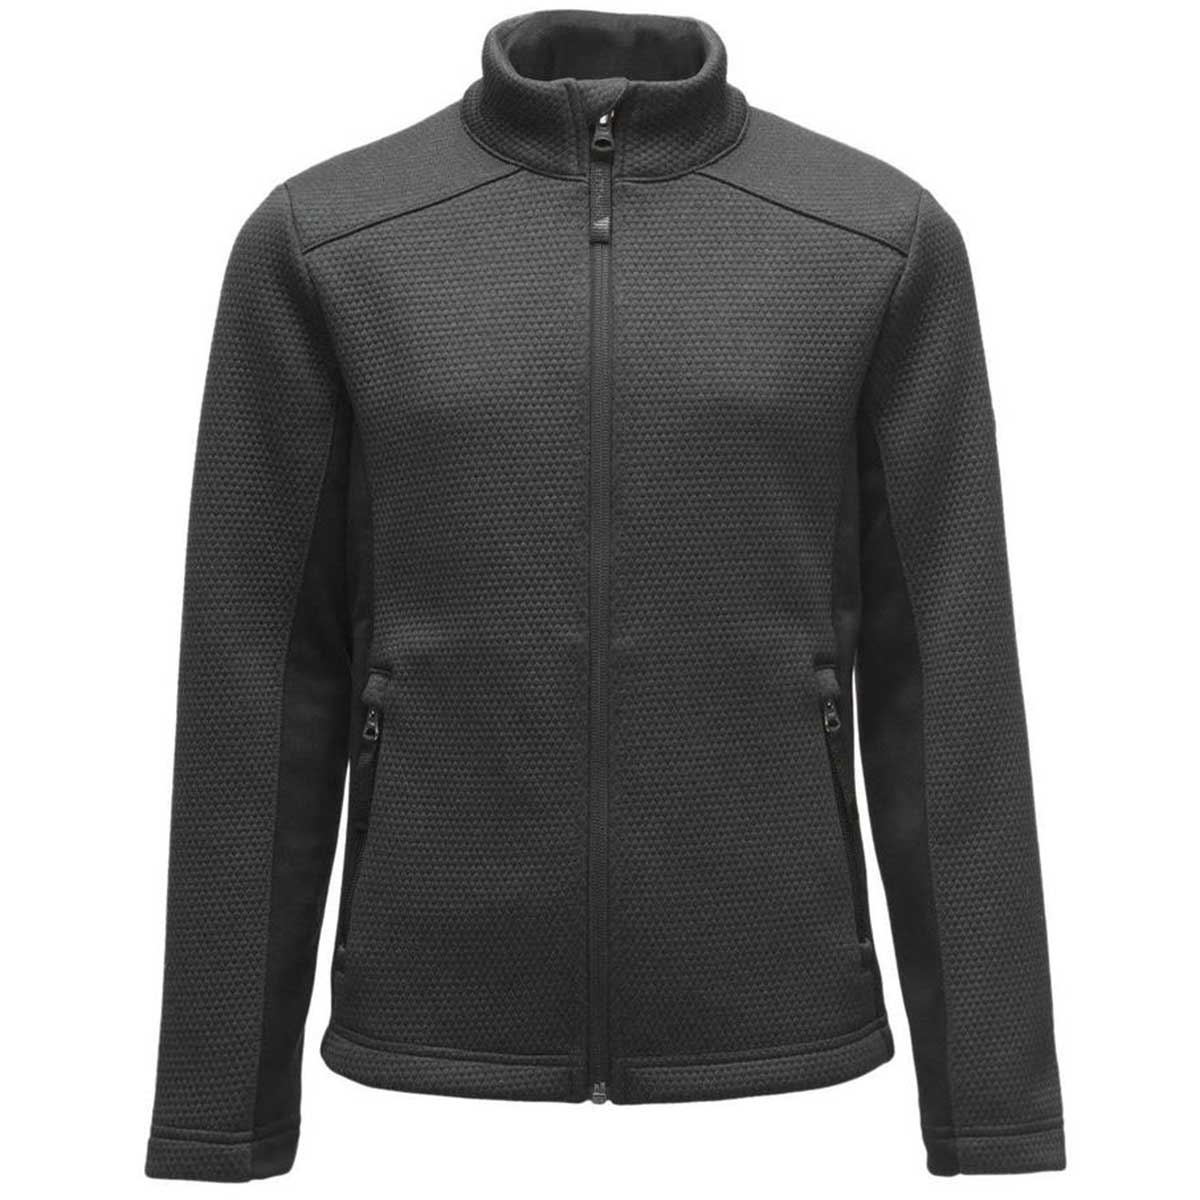 Spyder girls' Encore Fleece Jacket in Black main view